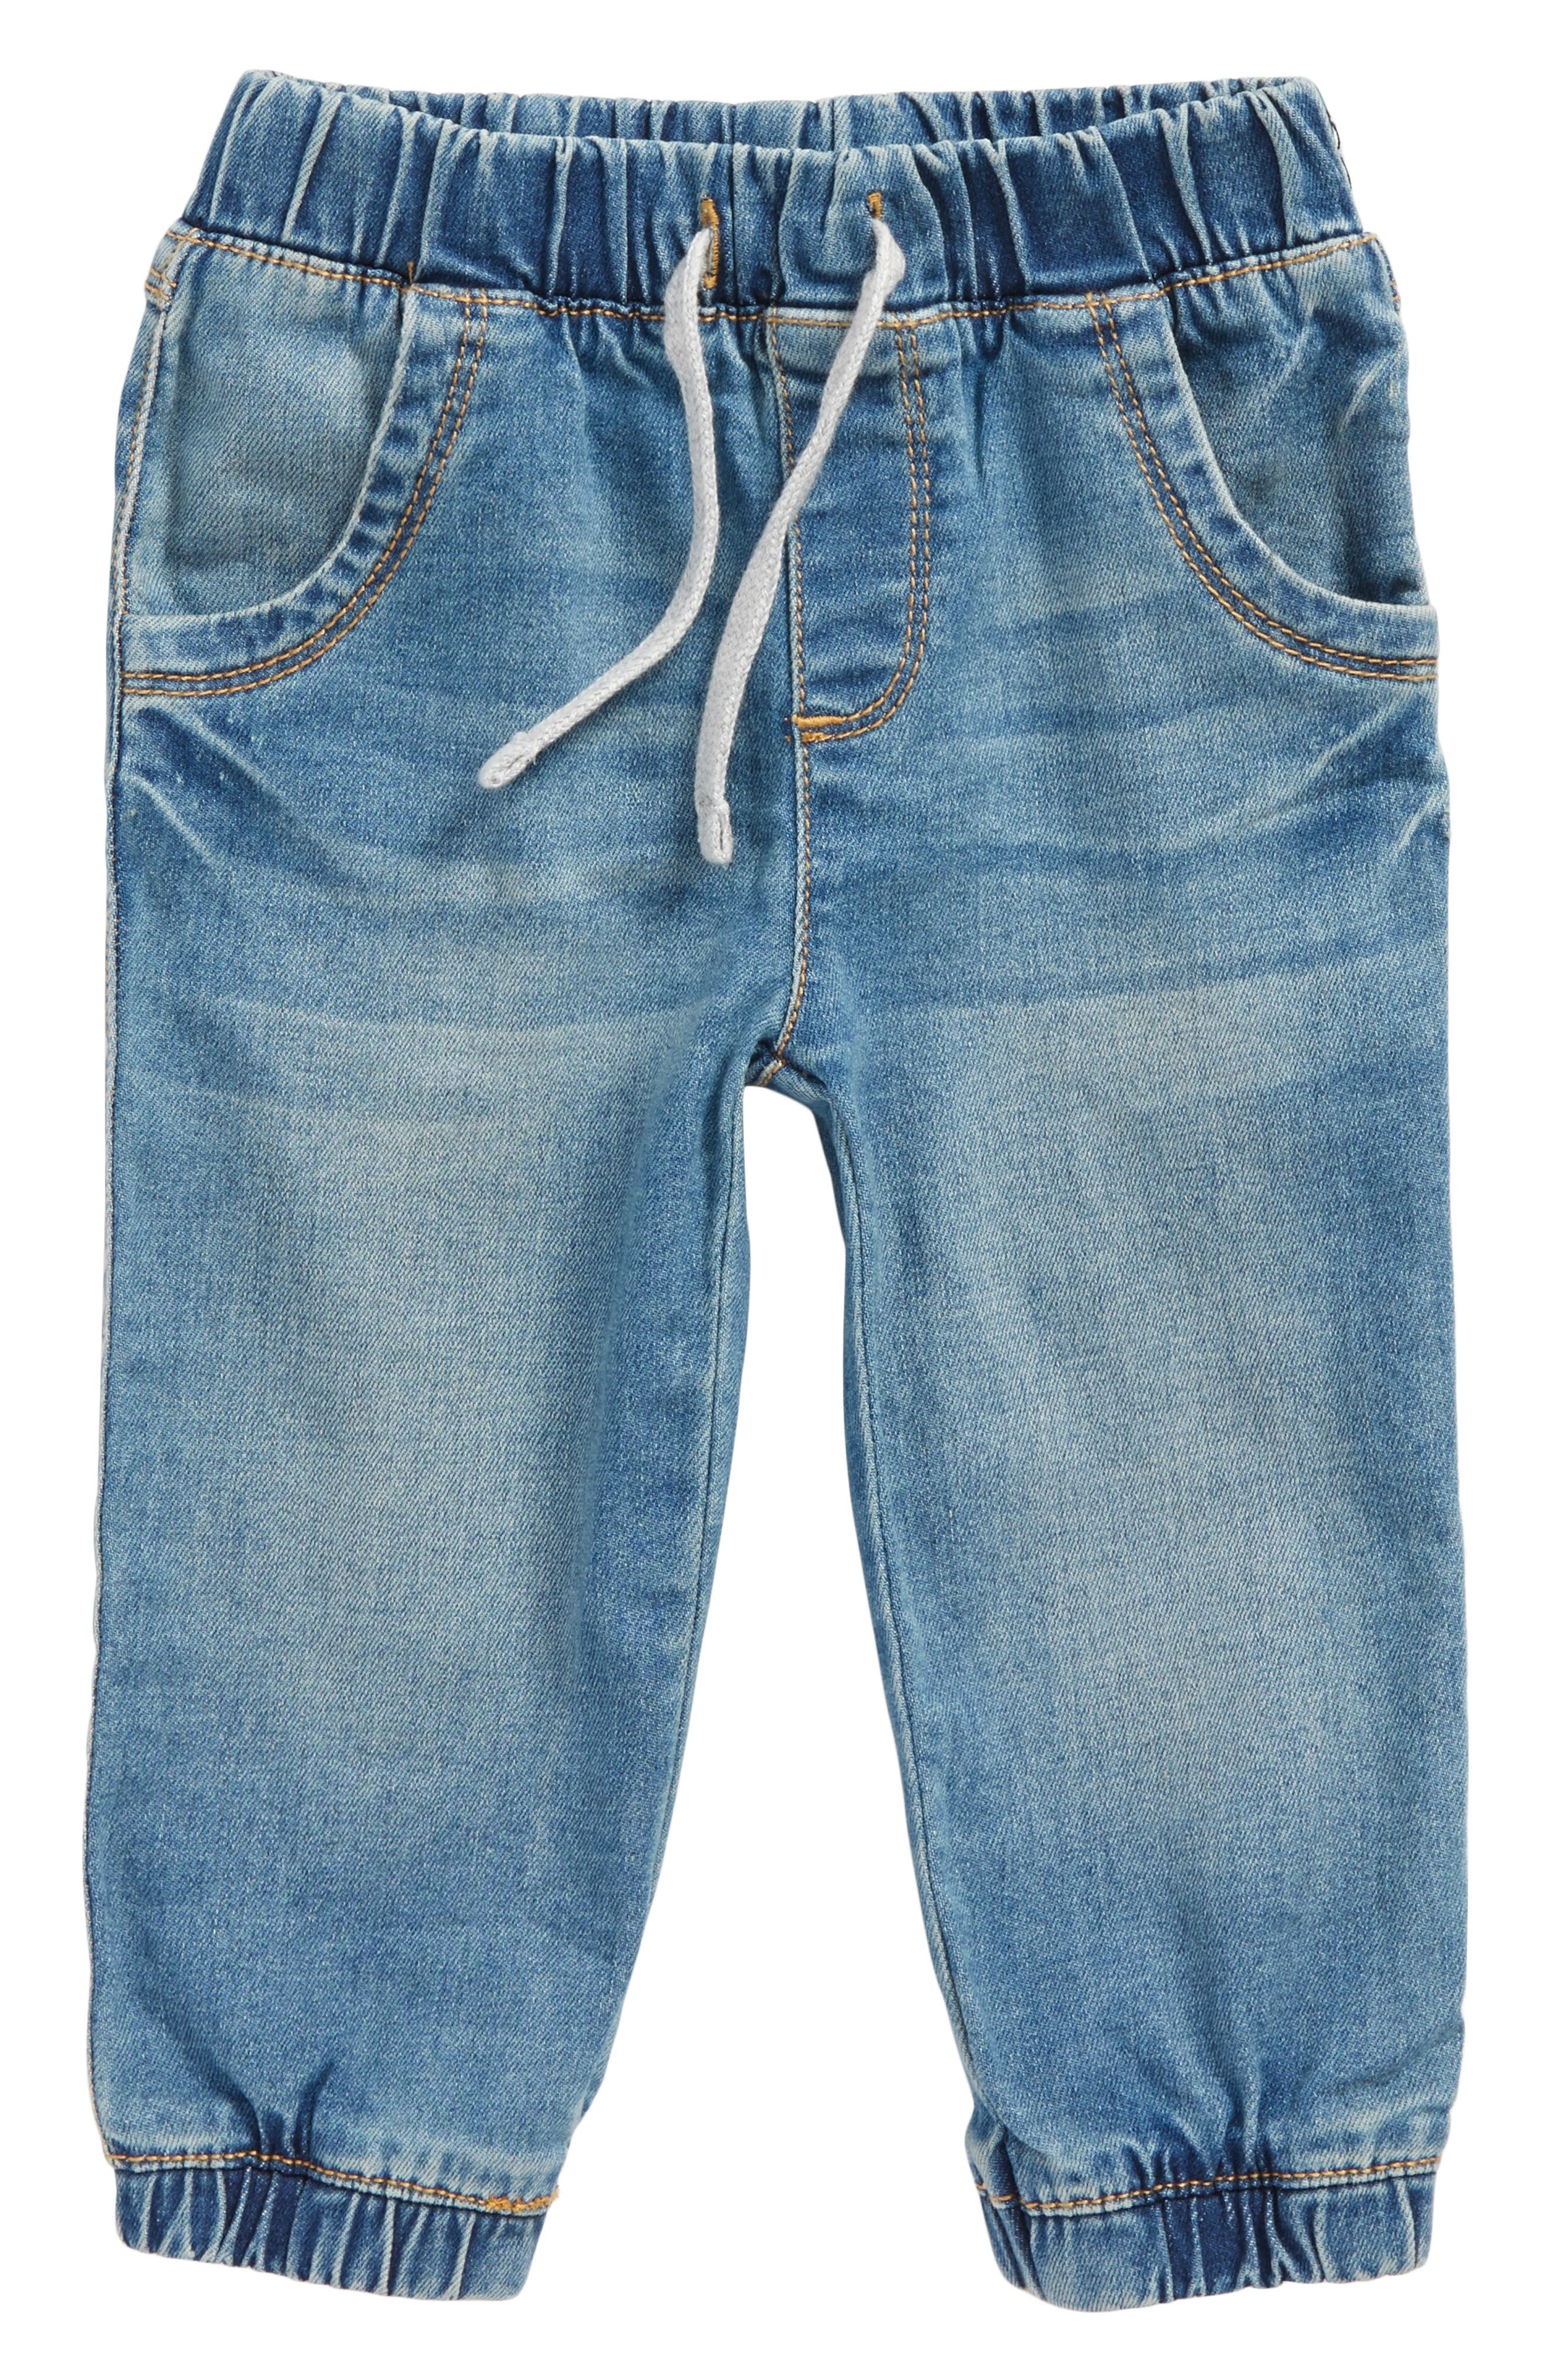 Stretch Denim Jogger Pants,                             Main thumbnail 1, color,                             401